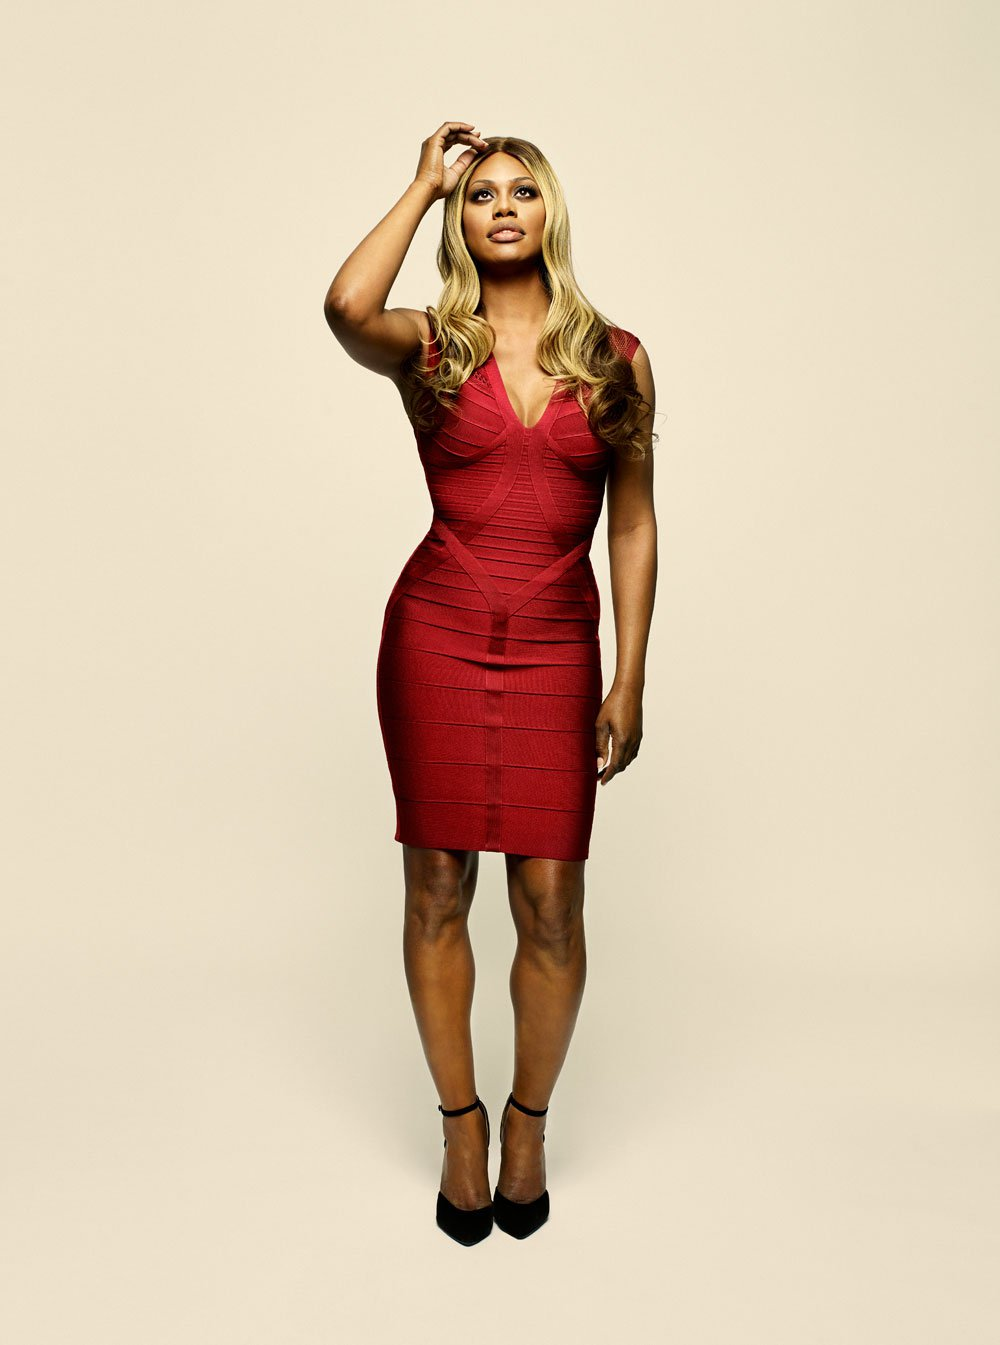 Discussion on this topic: WCW: Laverne Cox, wcw-laverne-cox/